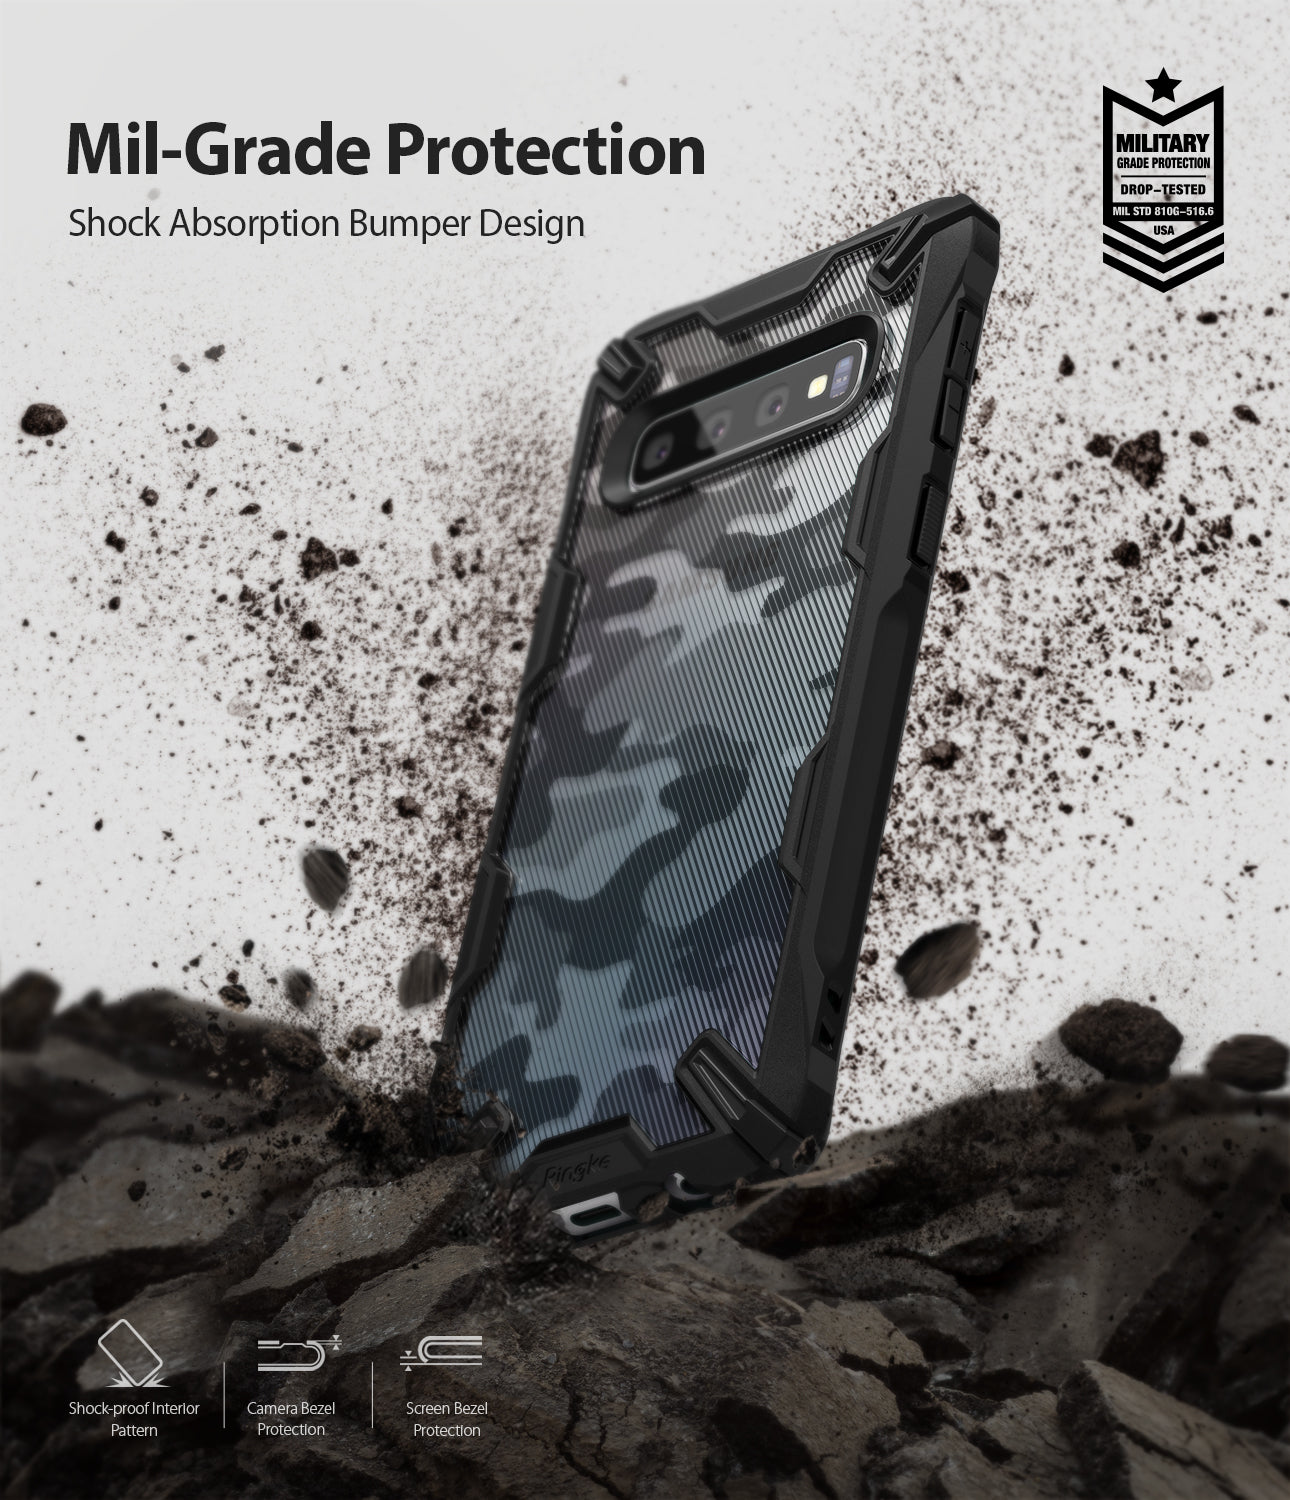 mil-grade protection of shock absorption bumper design